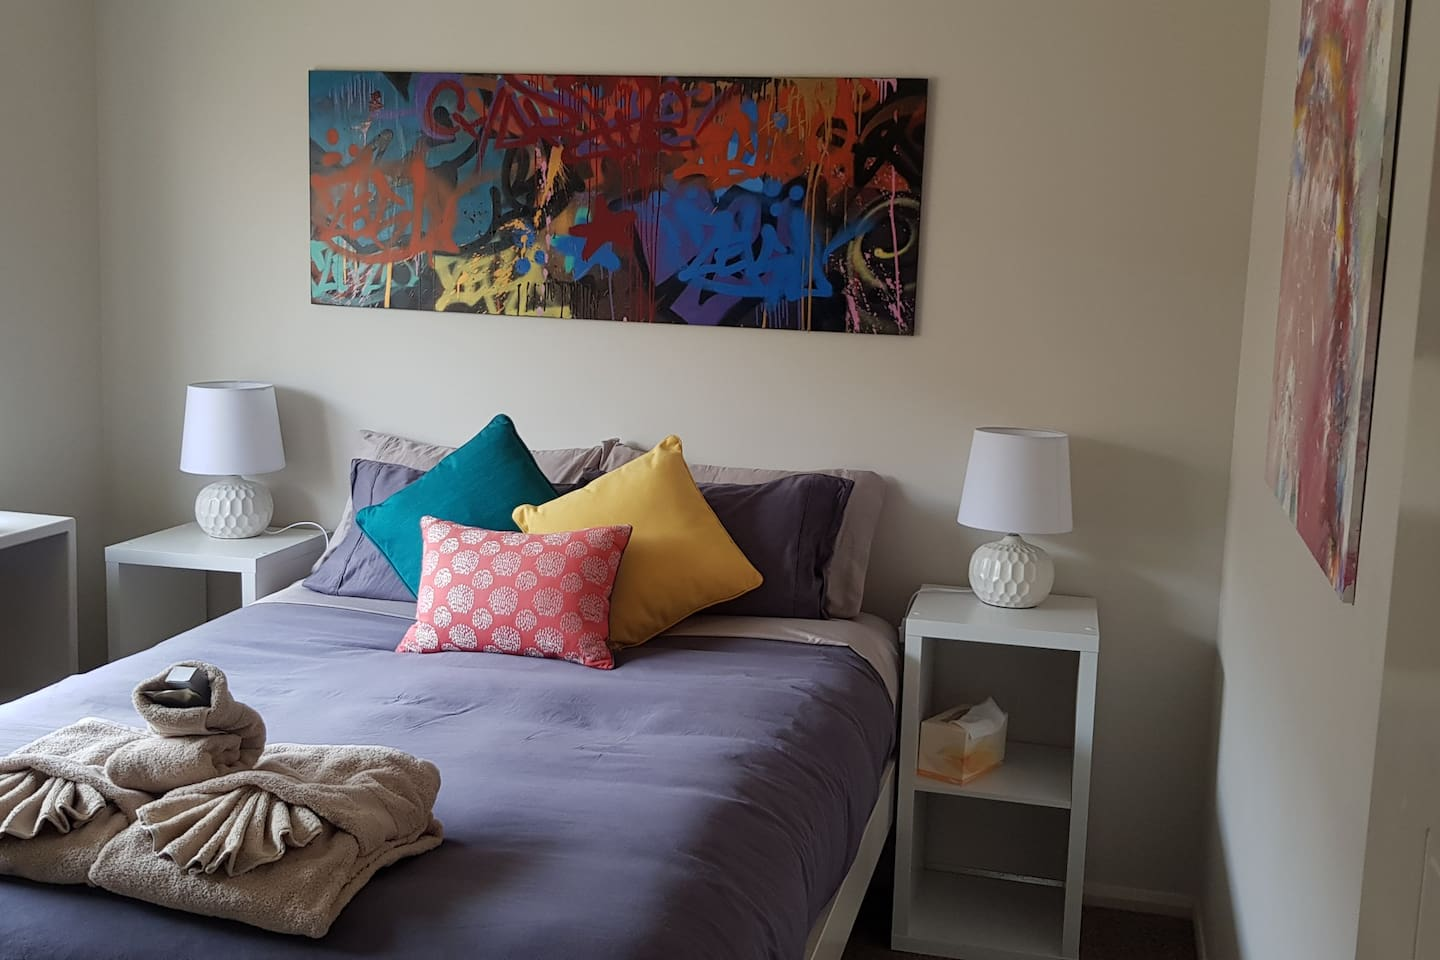 Sleep well in the very comfy bespoke bed; like a little reading to help you settle in, grab a book from the bespoke floating shelves. Appreciate the funky, then you'll like the Abstact & Graffiti art in the bedroom & Activity room.